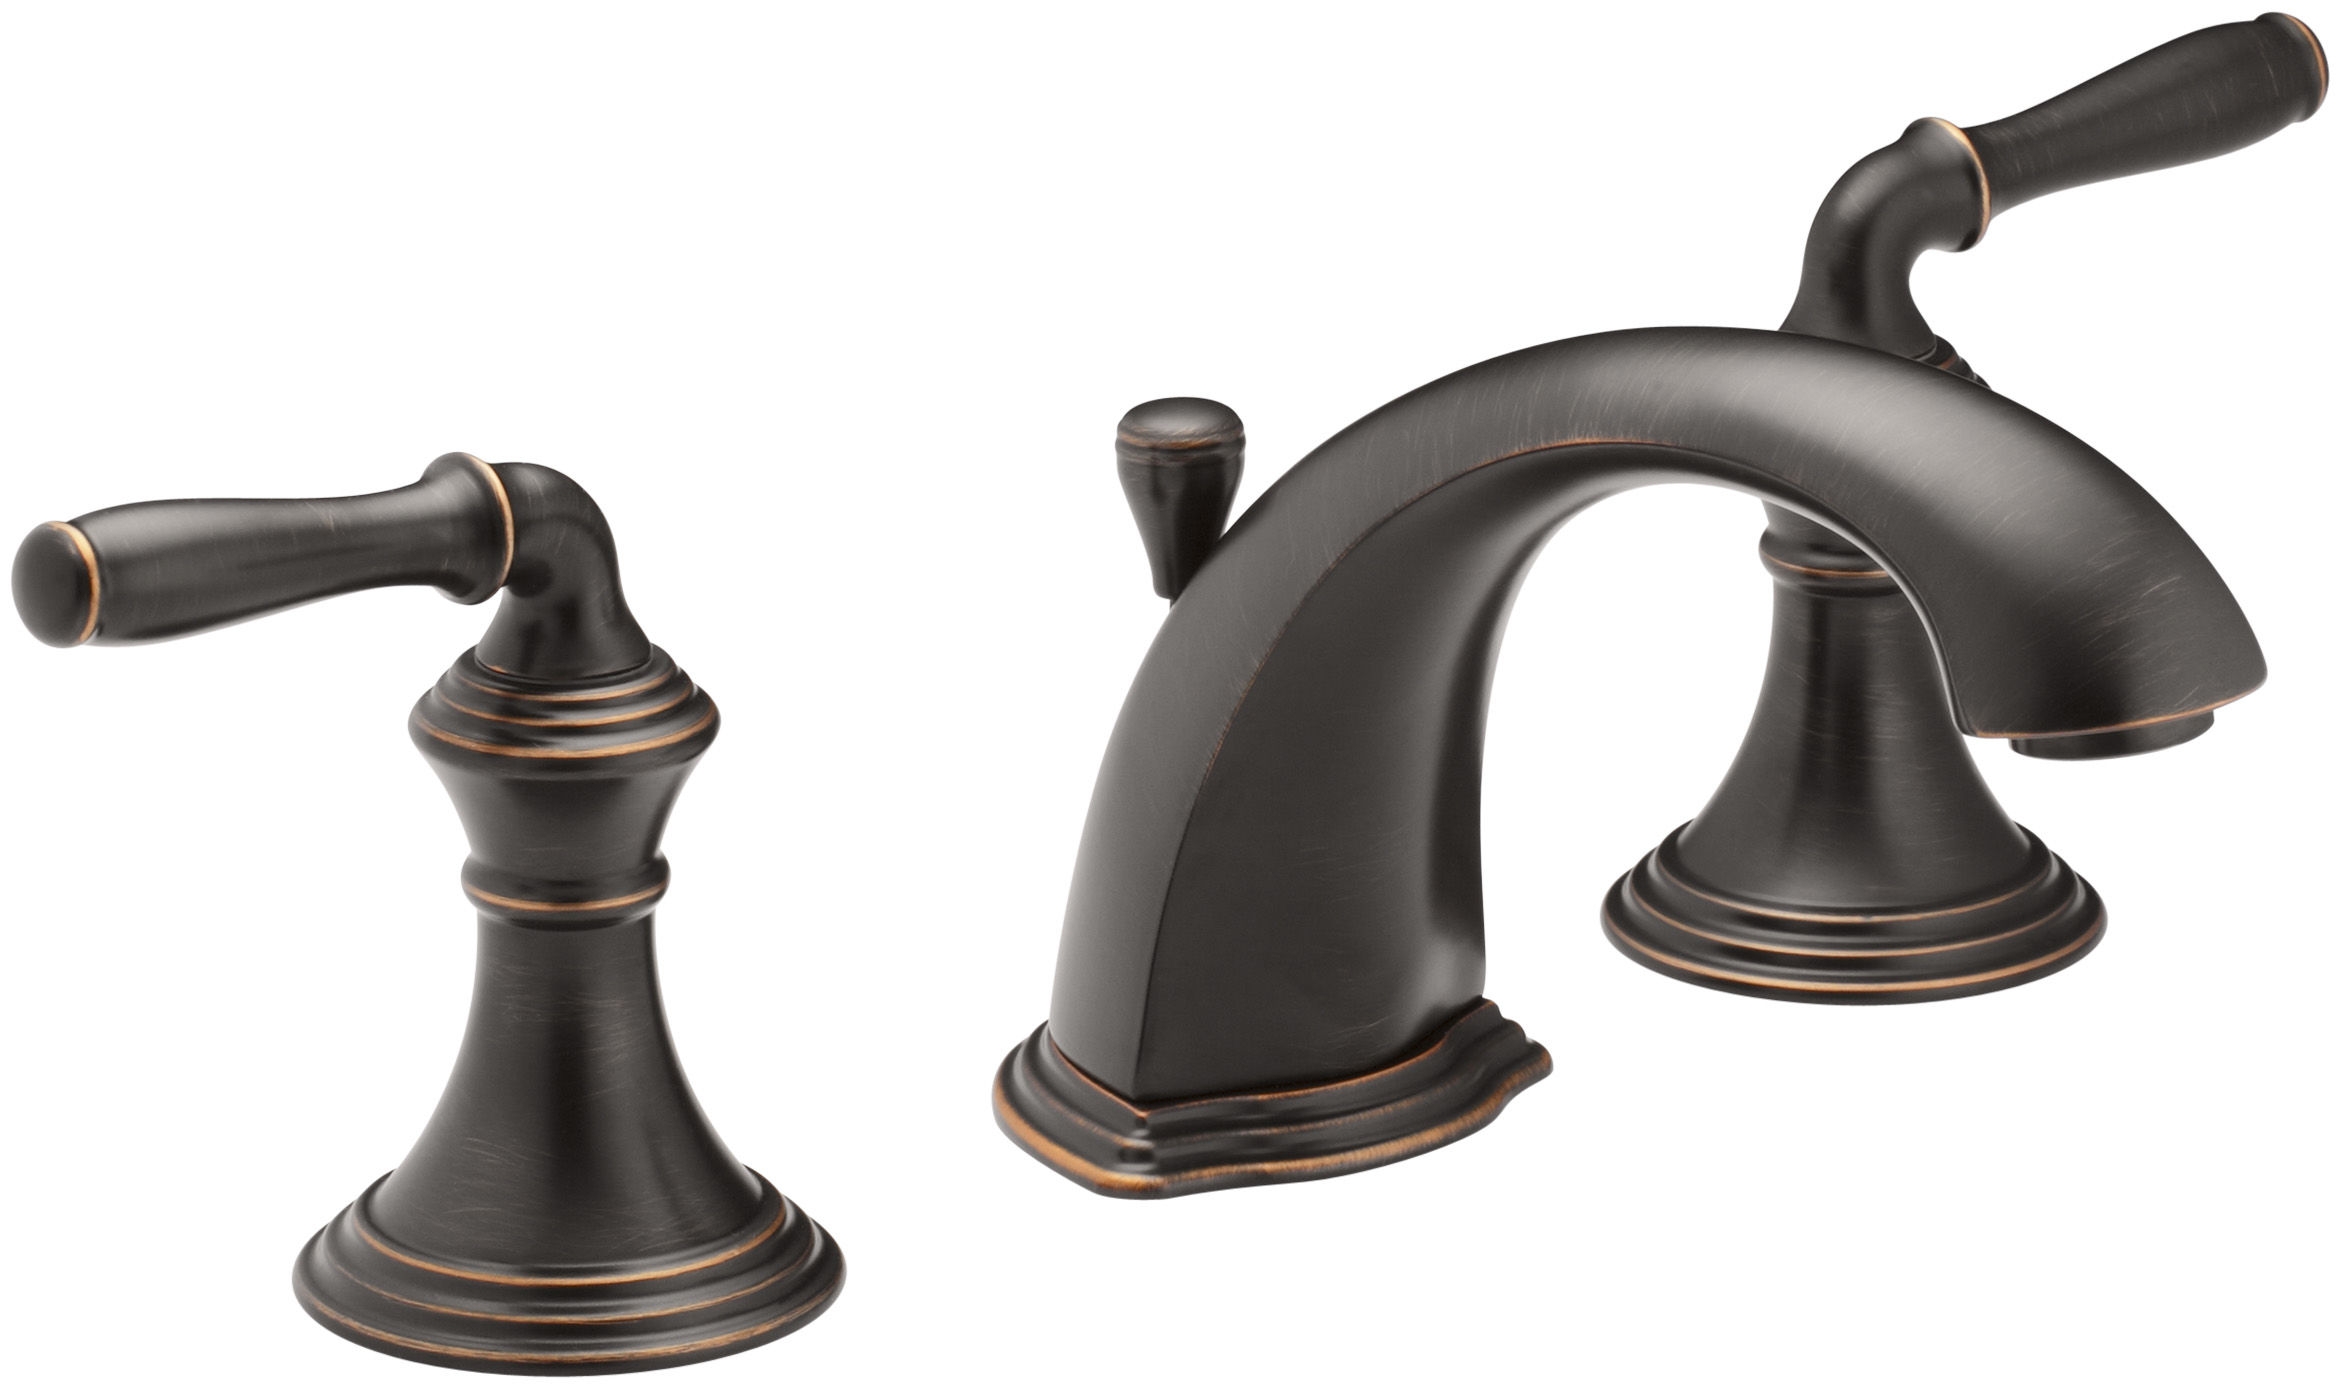 Kohler K 394 4 2bz Oil Rubbed Bronze